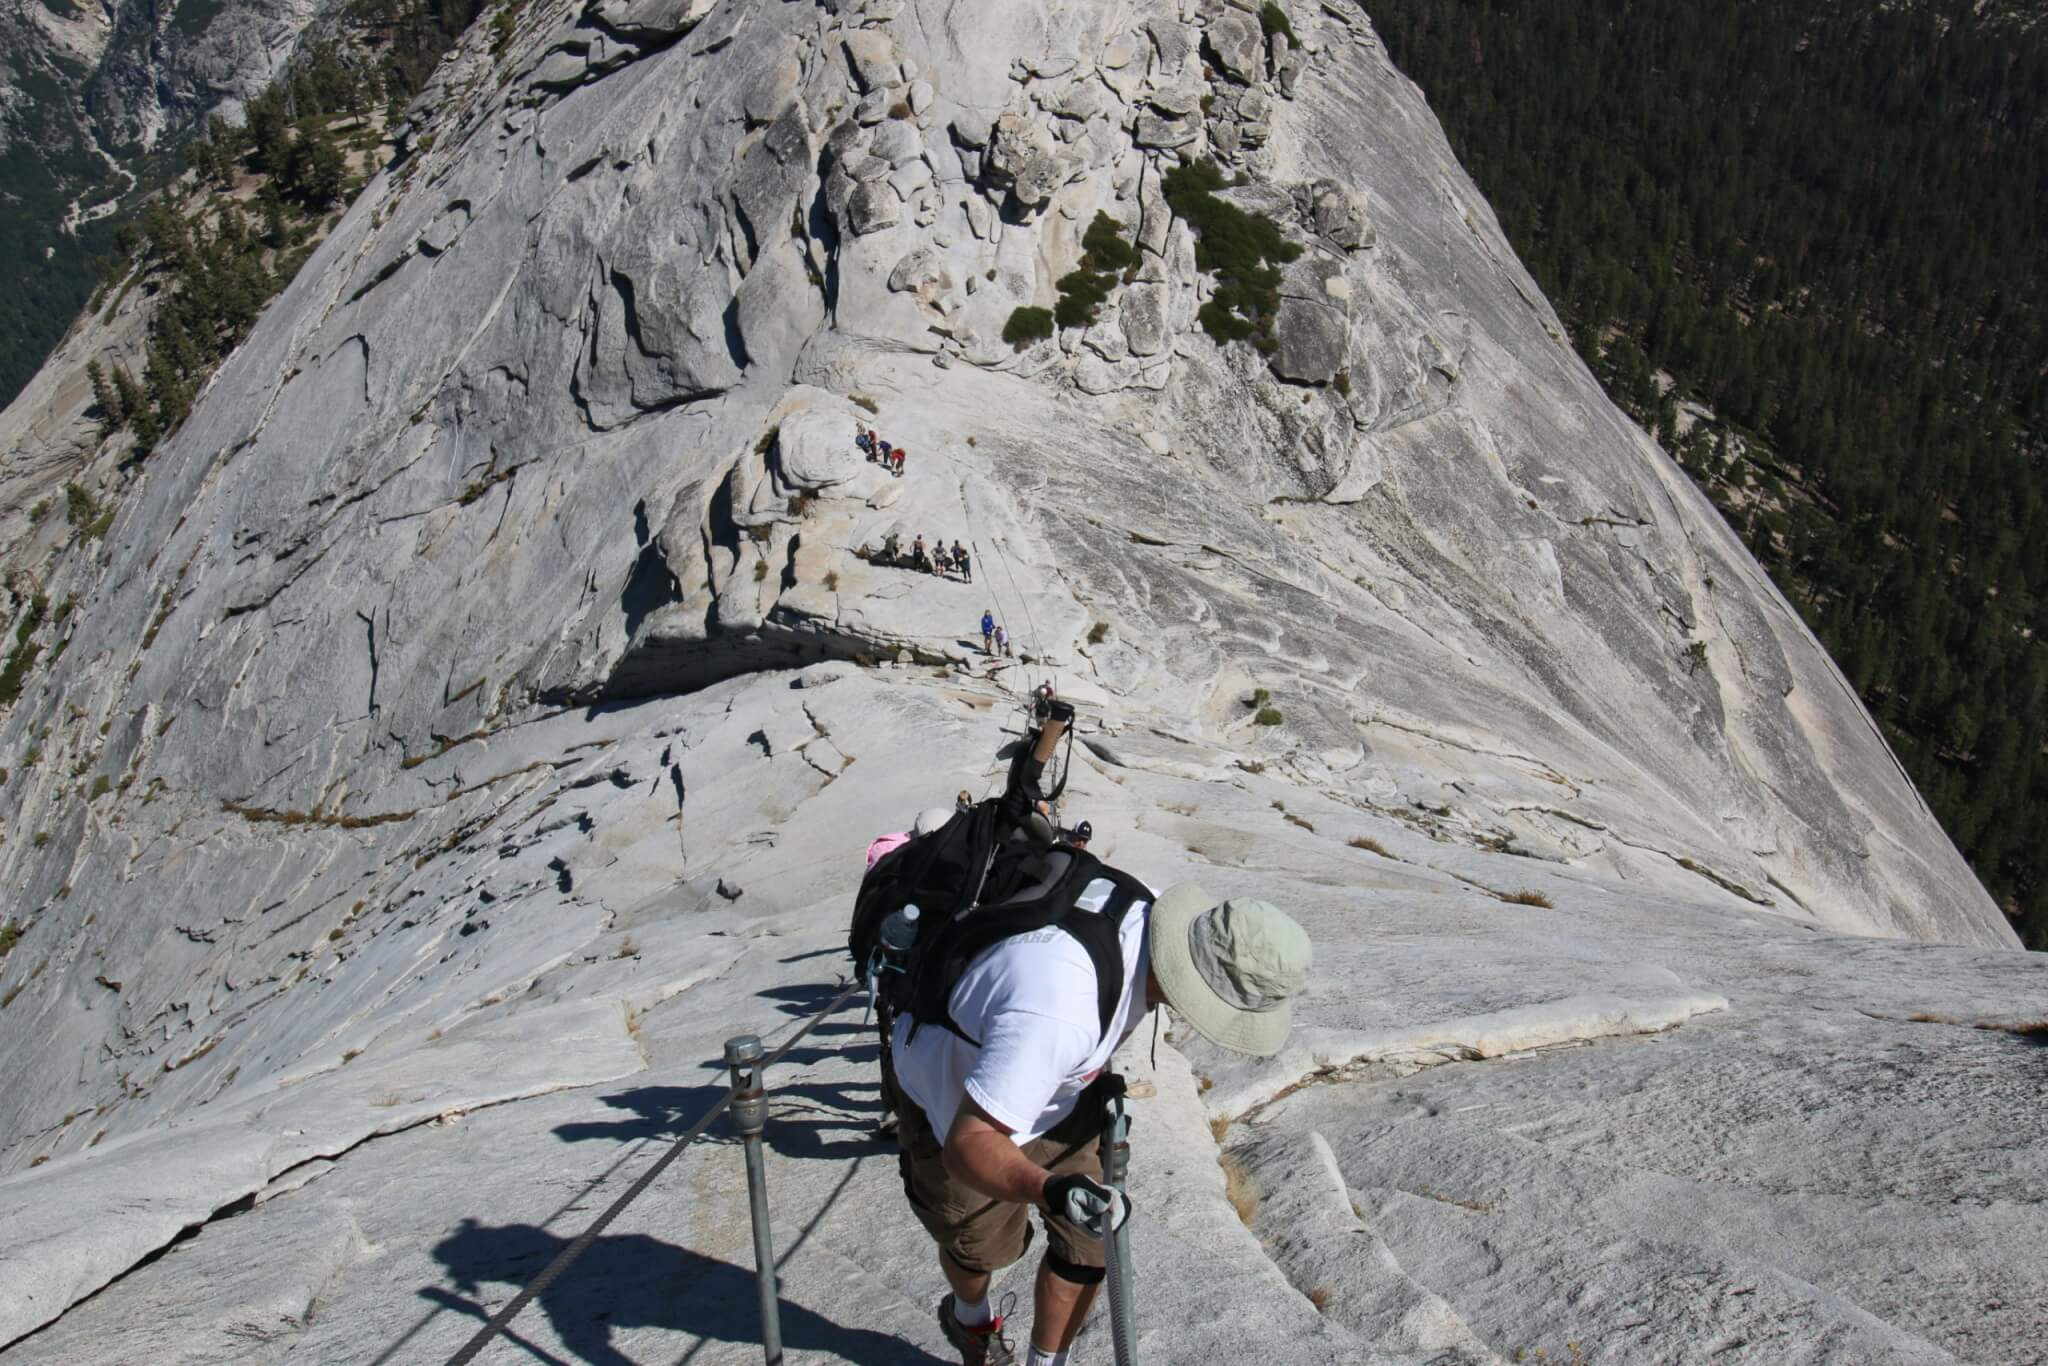 Yosemite National Park Reopening Soon